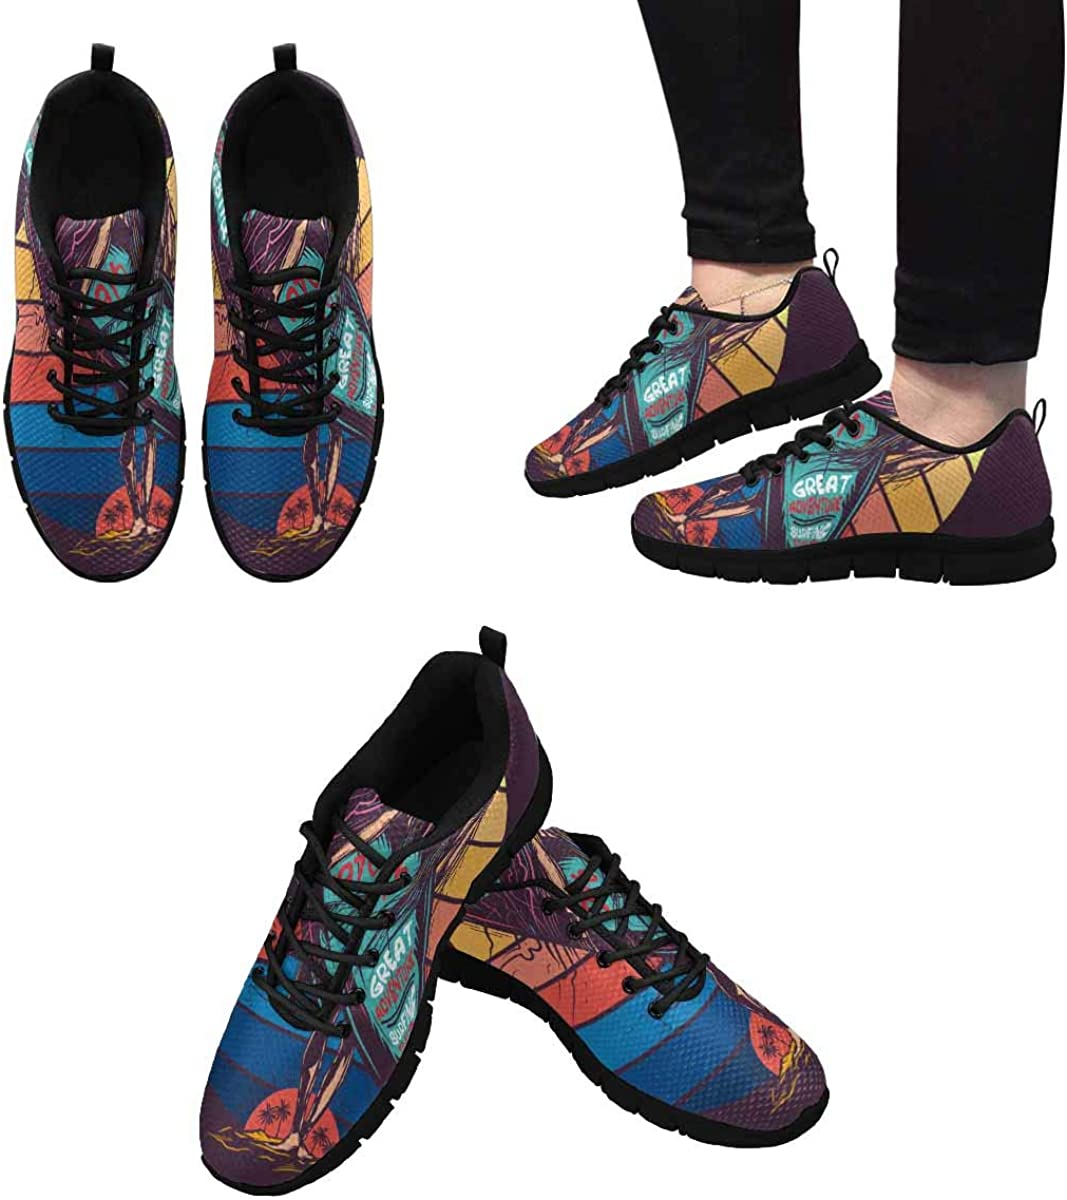 InterestPrint Girl Going to The Sea Women's Athletic Walking Running Sneakers Comfortable Lightweight Shoes